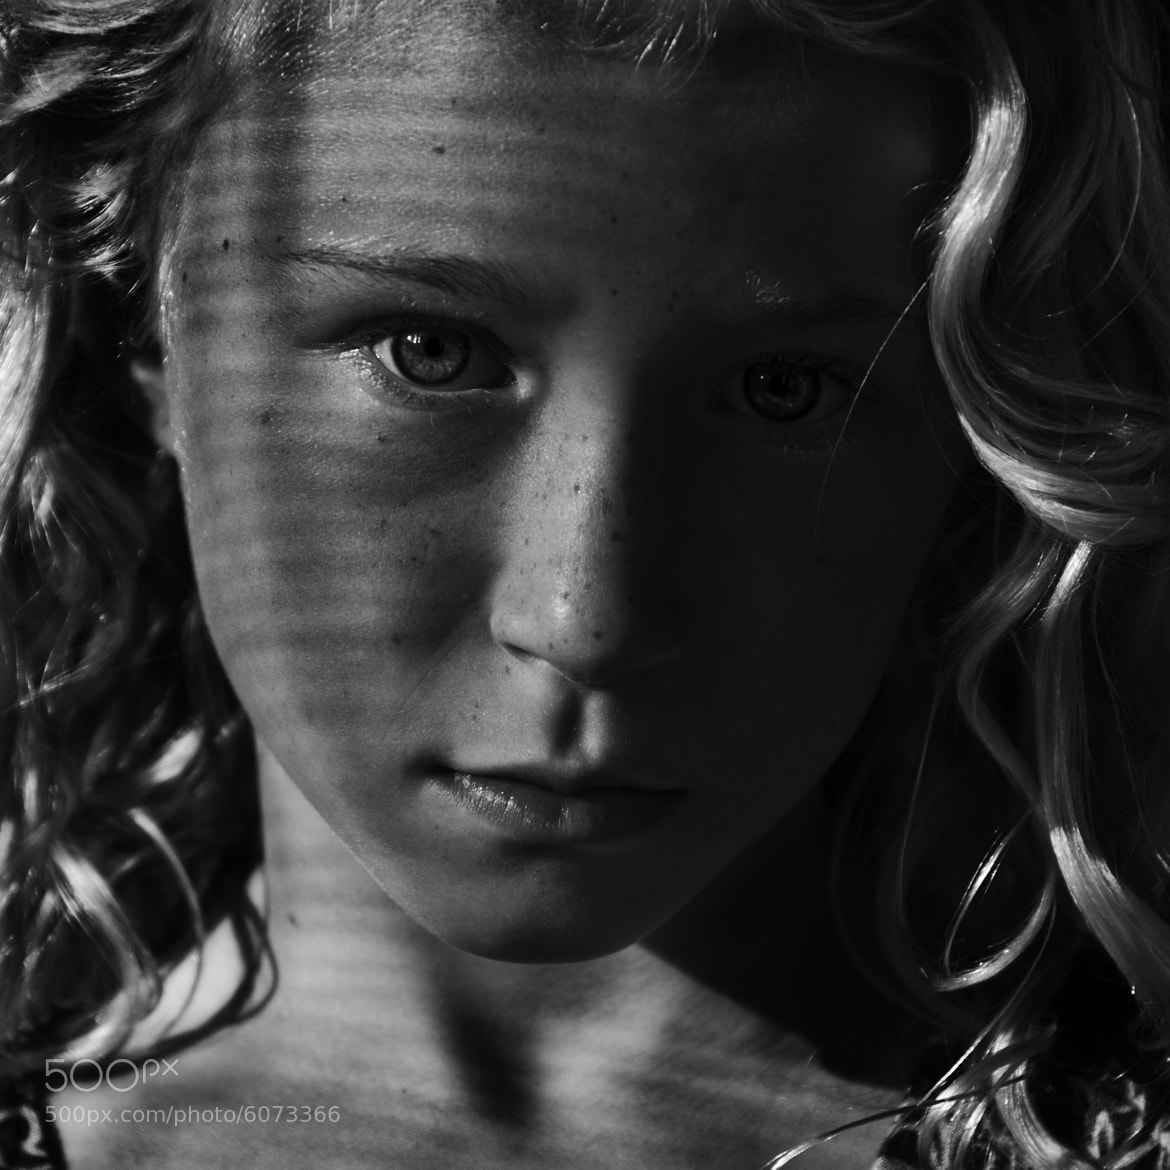 Photograph Tess by Betina La Plante on 500px